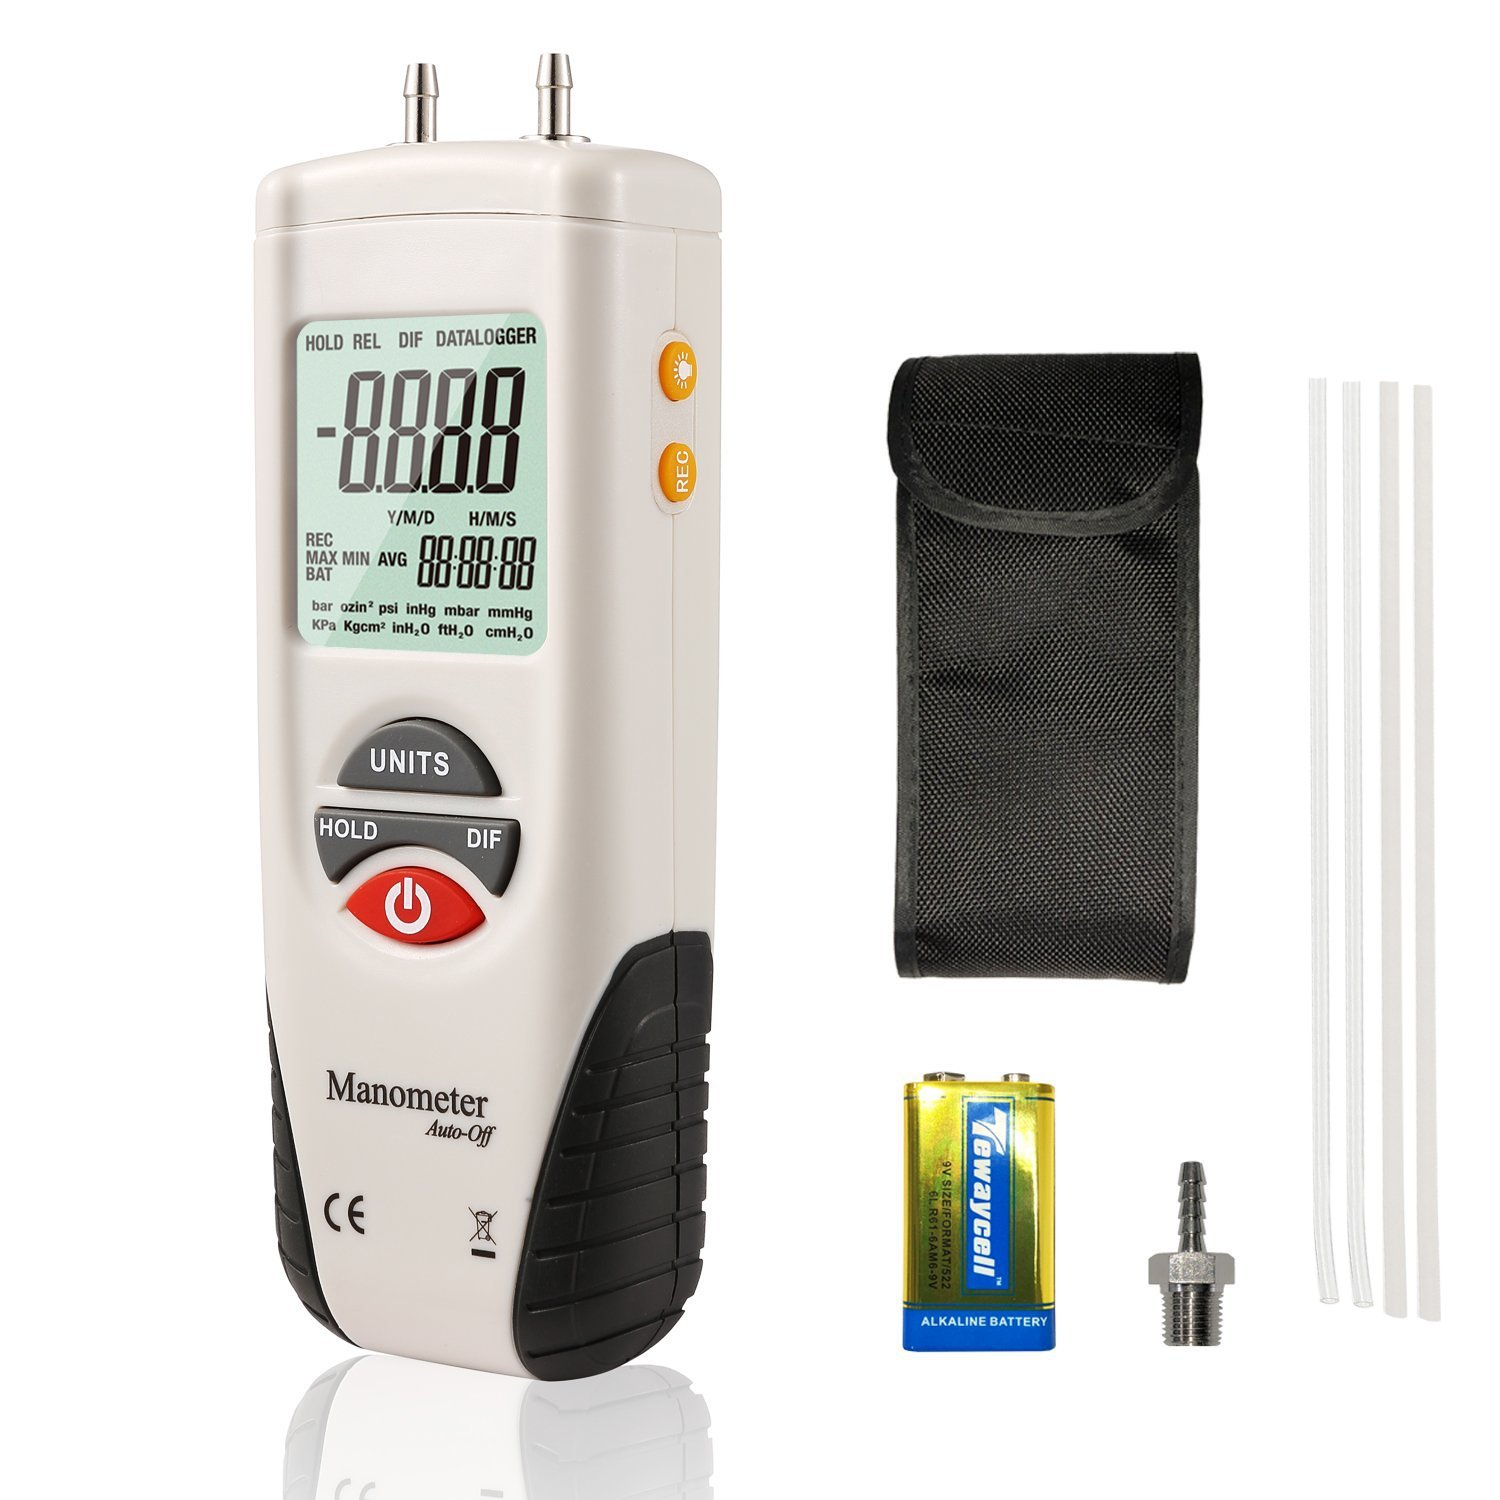 AUTOUTLET Digital Manometer HVAC Gas Pressure Tester Manometer Air Pressure Guage 0℃ to 50 ℃ with 9V Battery